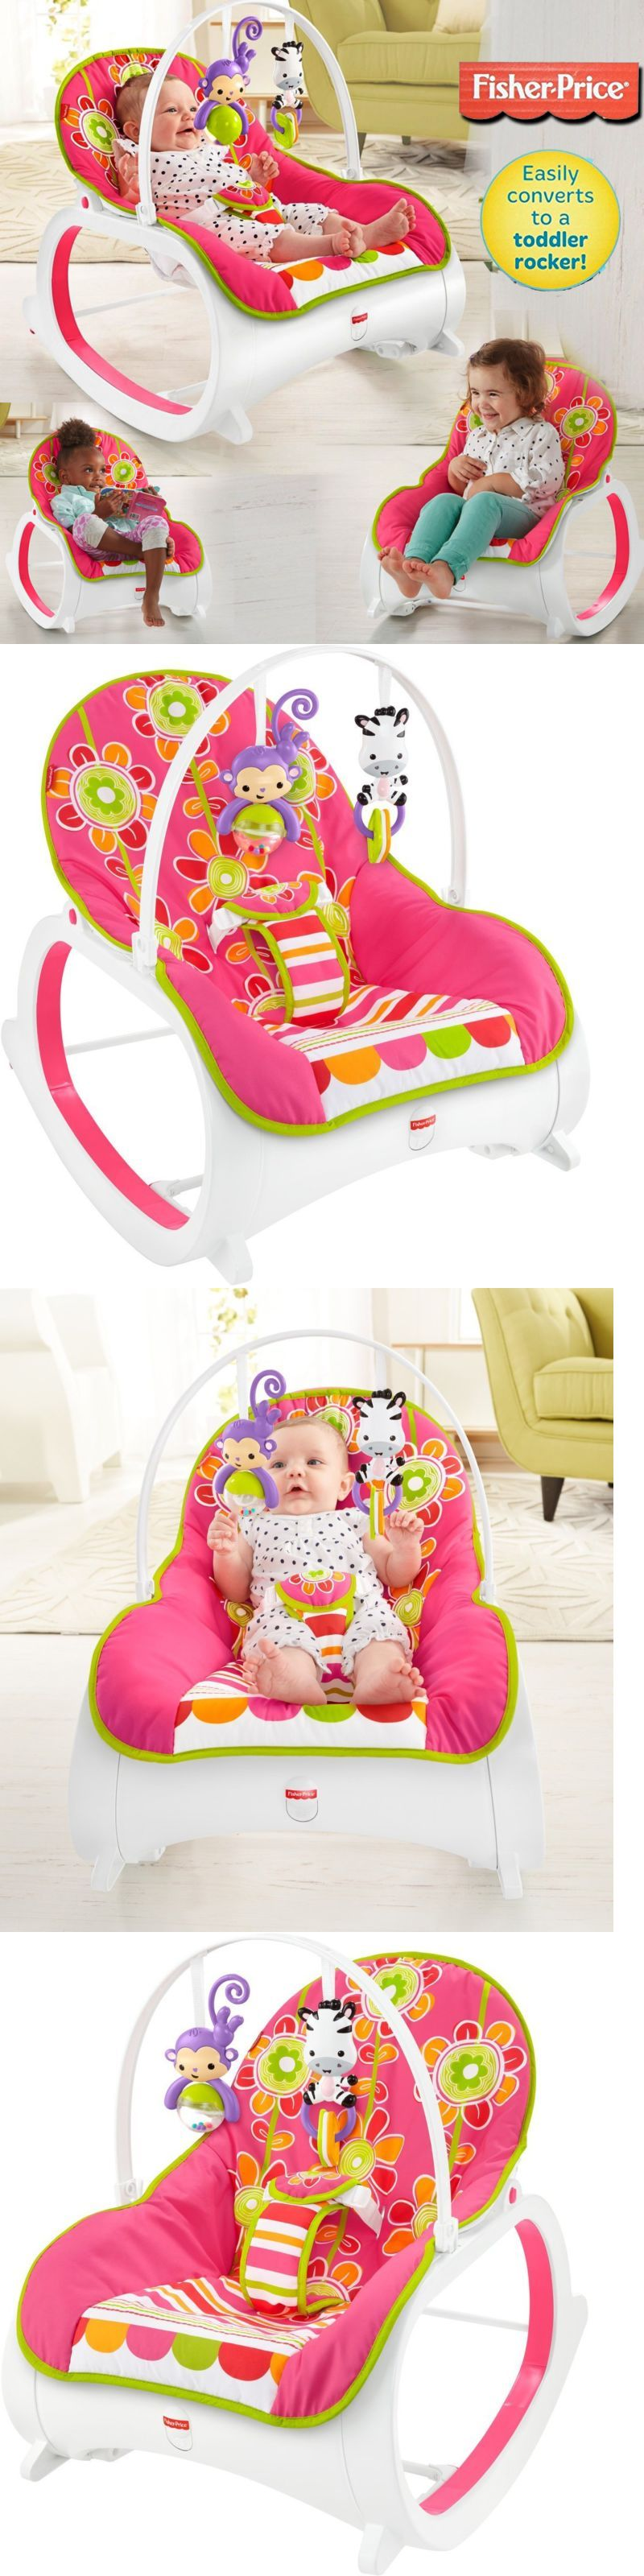 Pink Infant To Toddler Rocker Bouncer Seat Baby Chair Sleeper Swing Fisher Price Bouncers And Vibrating Chairs 117034 Toy Portable Buy It Now Only 4855 On Ebay